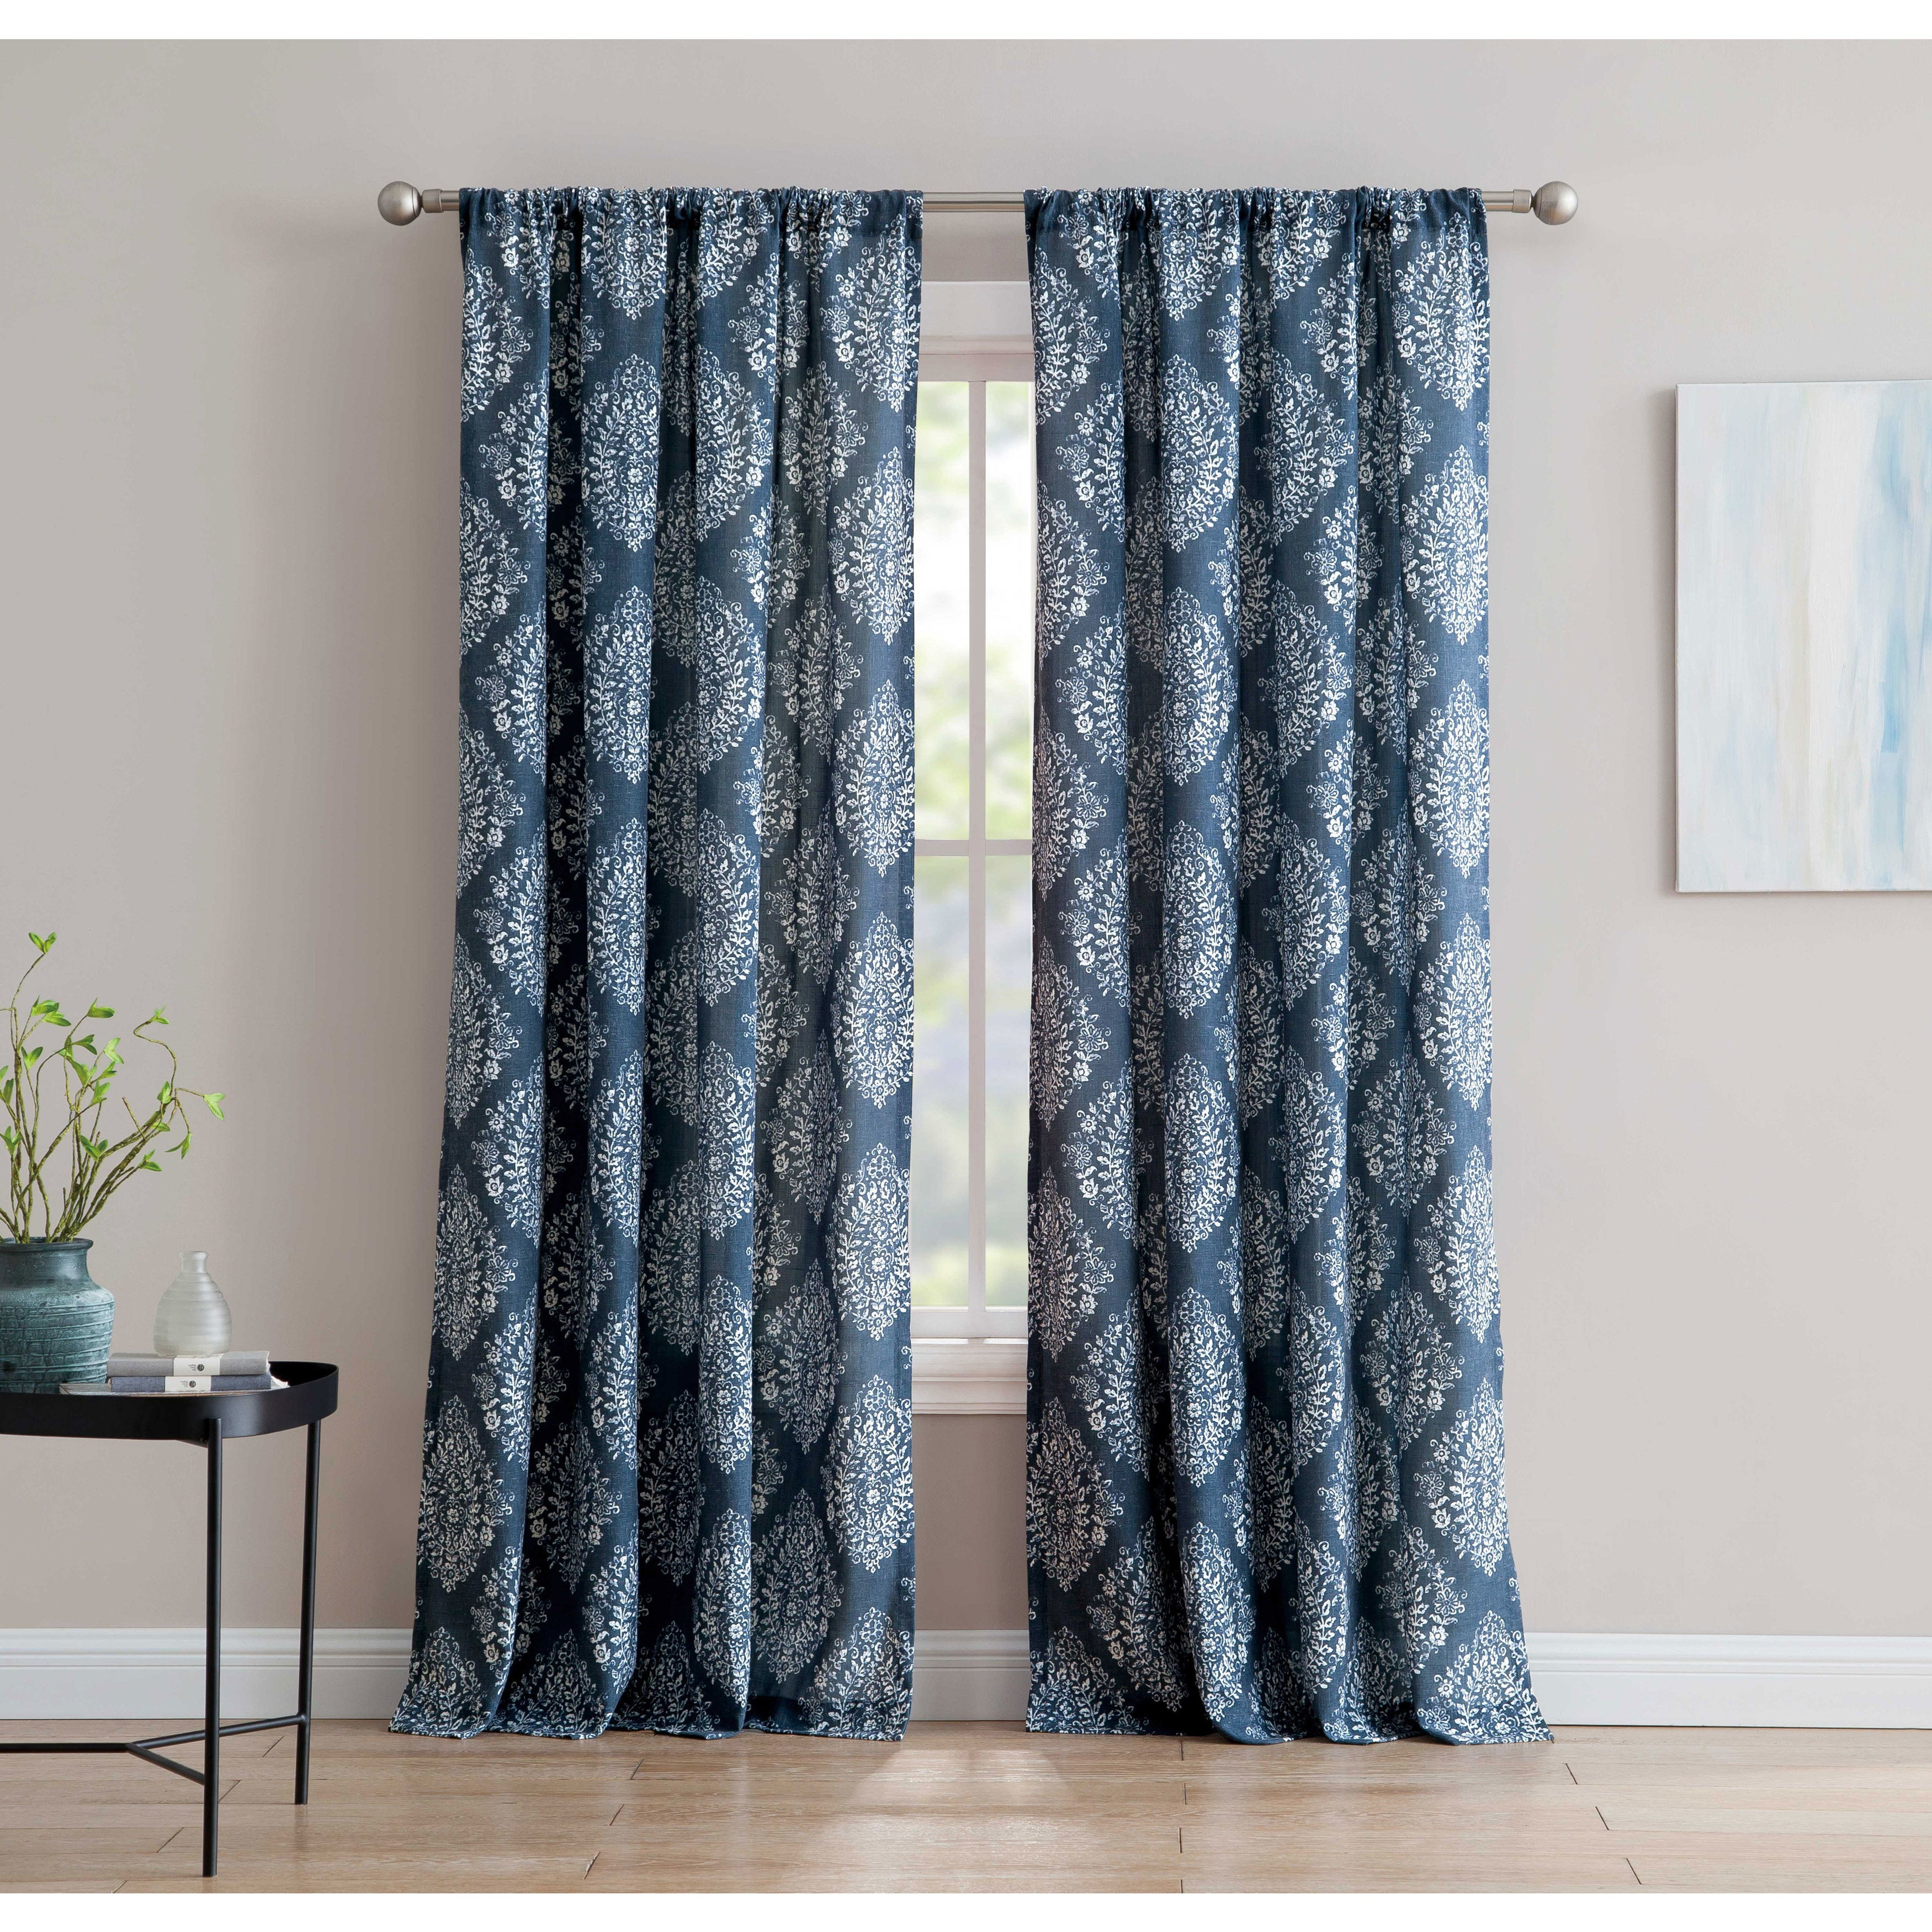 Alma 84 Inch Window Curtain With Rod Pocket Single Panel, Inspired Surroundings1888 Mills For Willow Rod Pocket Window Curtain Panels (View 11 of 30)